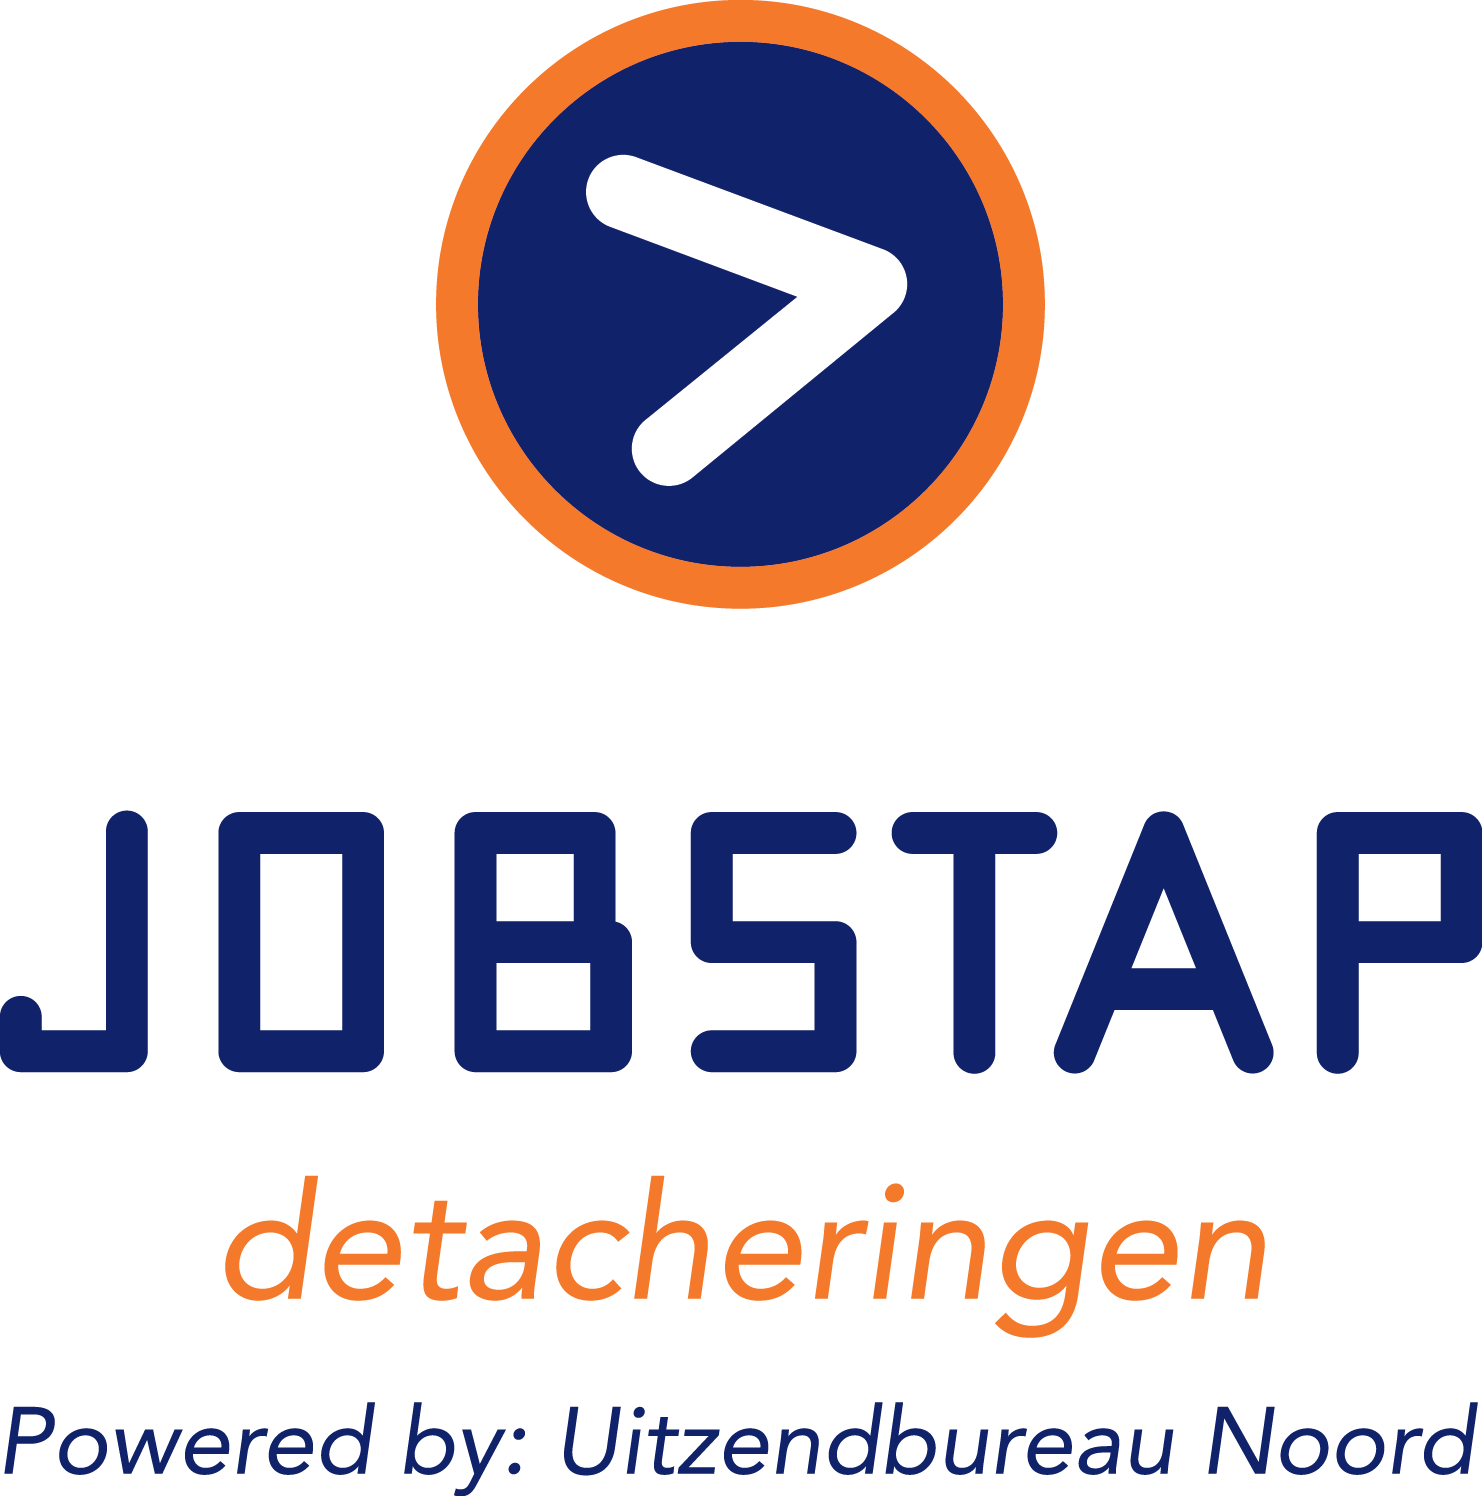 Jobstap Detacheringen